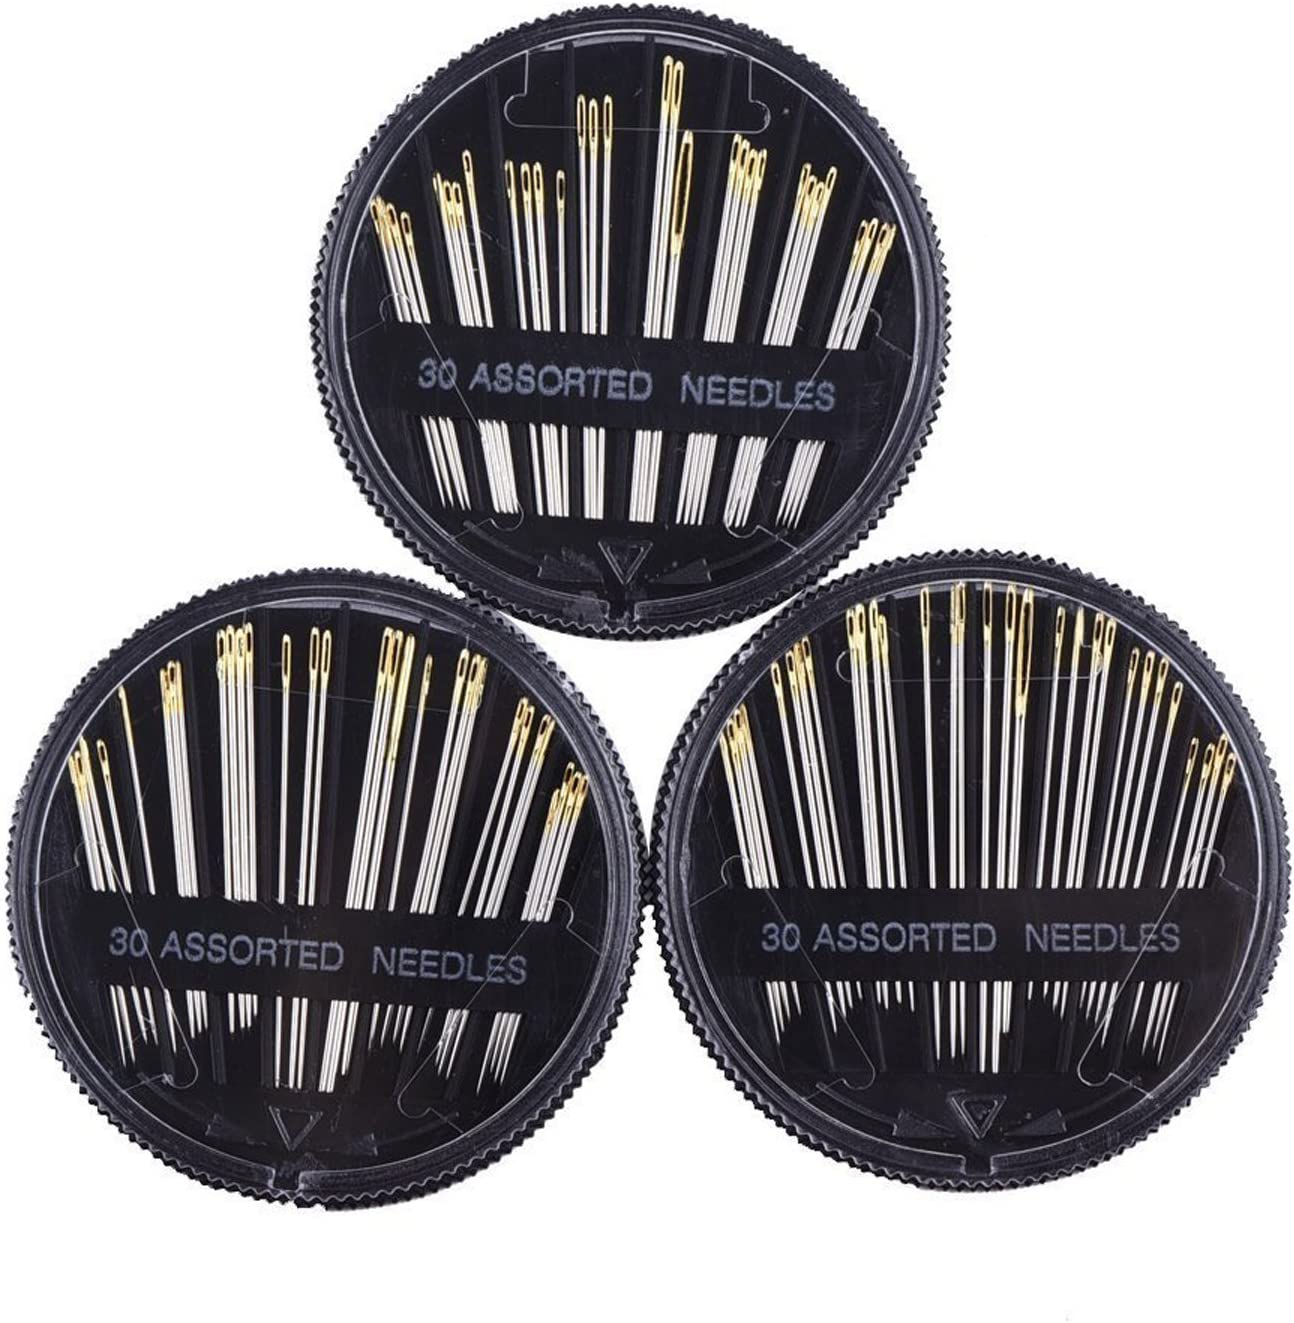 60 Count Assorted Sizes Embroidery Mending Craft Quilt Handle Sewing Needle Set with Srorage Case Hand Sewing Needles